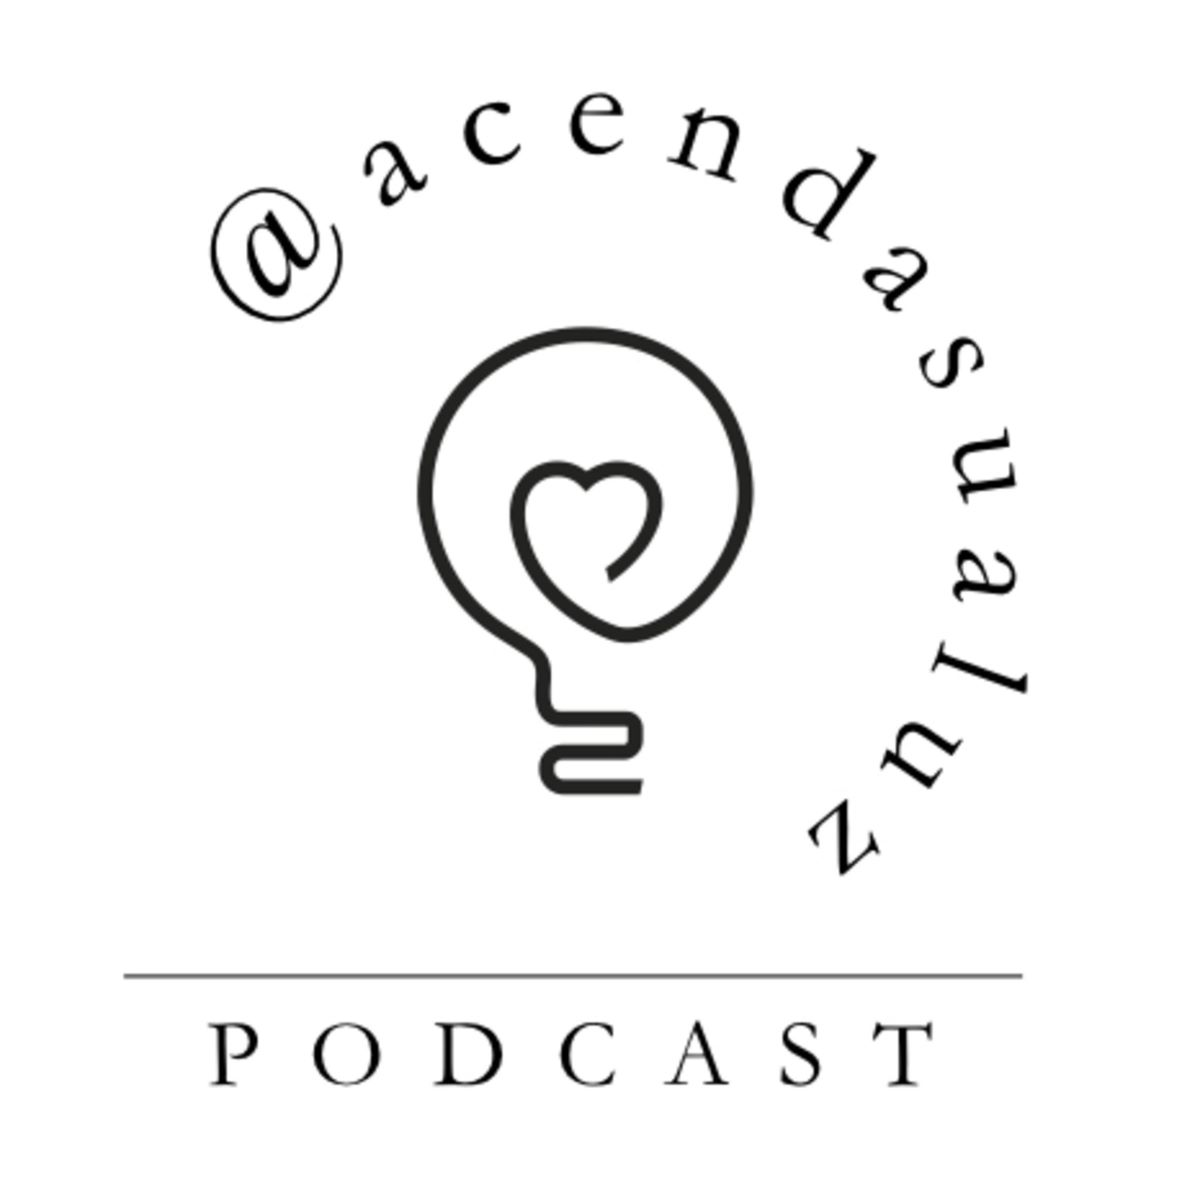 podcasts de saúde mental